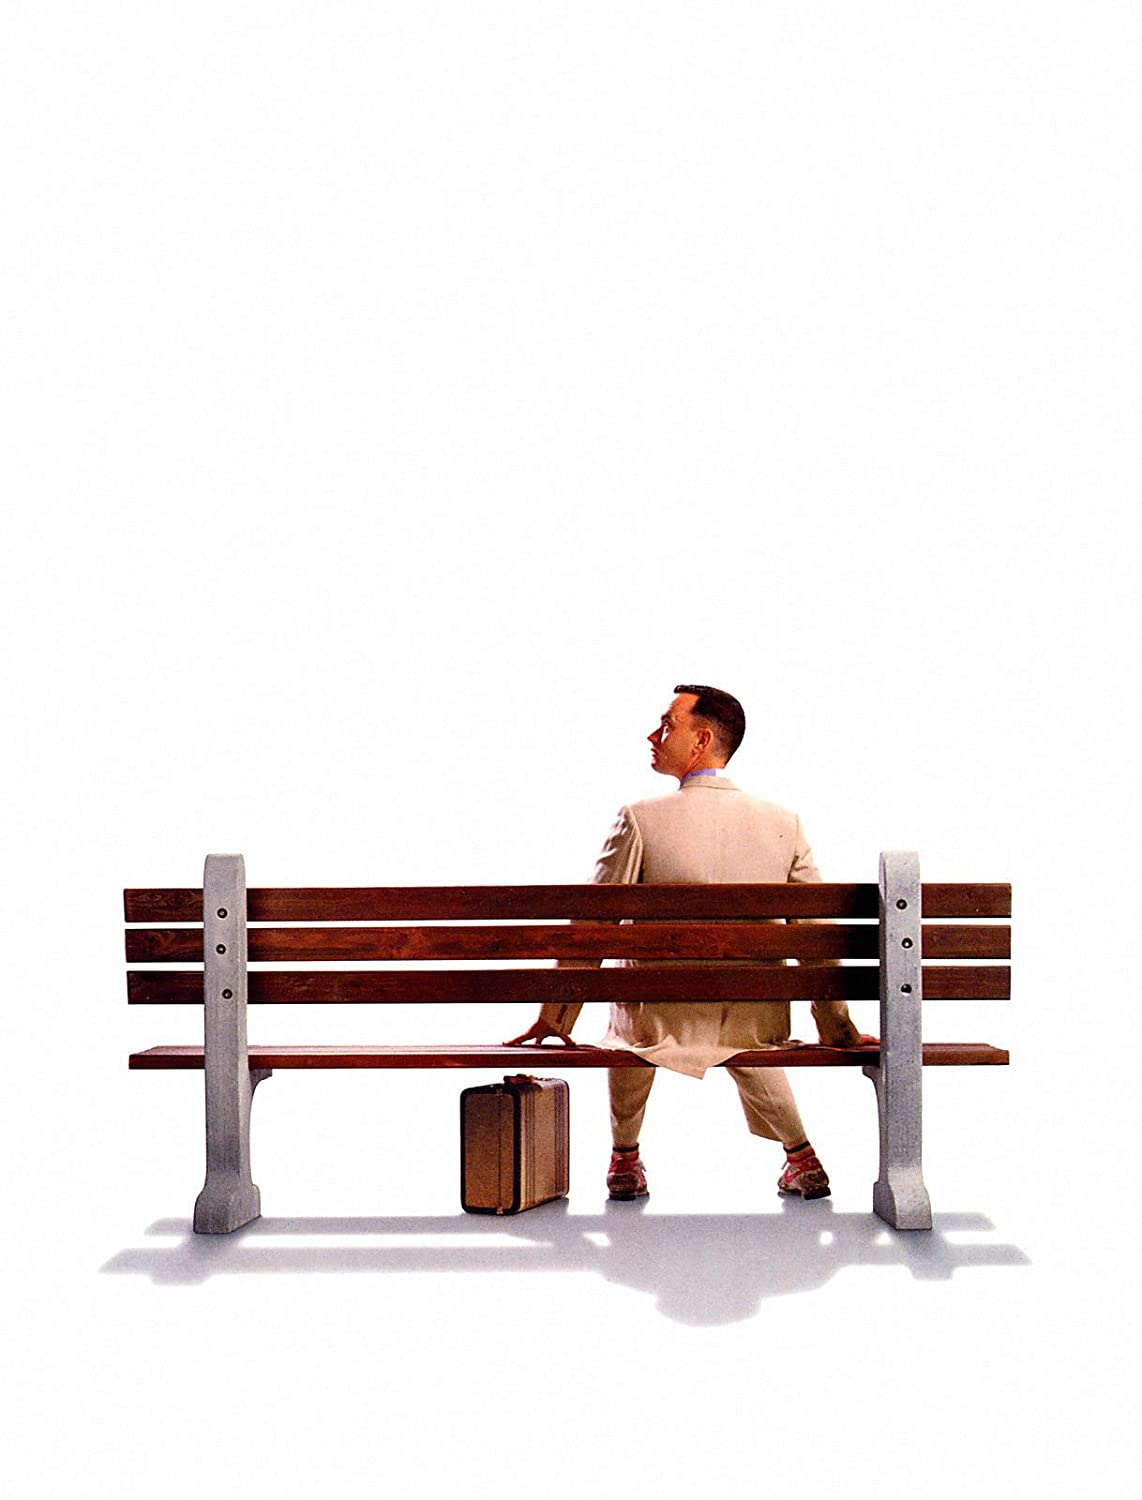 Amazon com: FORREST GUMP Movie Poster Rare ART Tom Hanks Rober